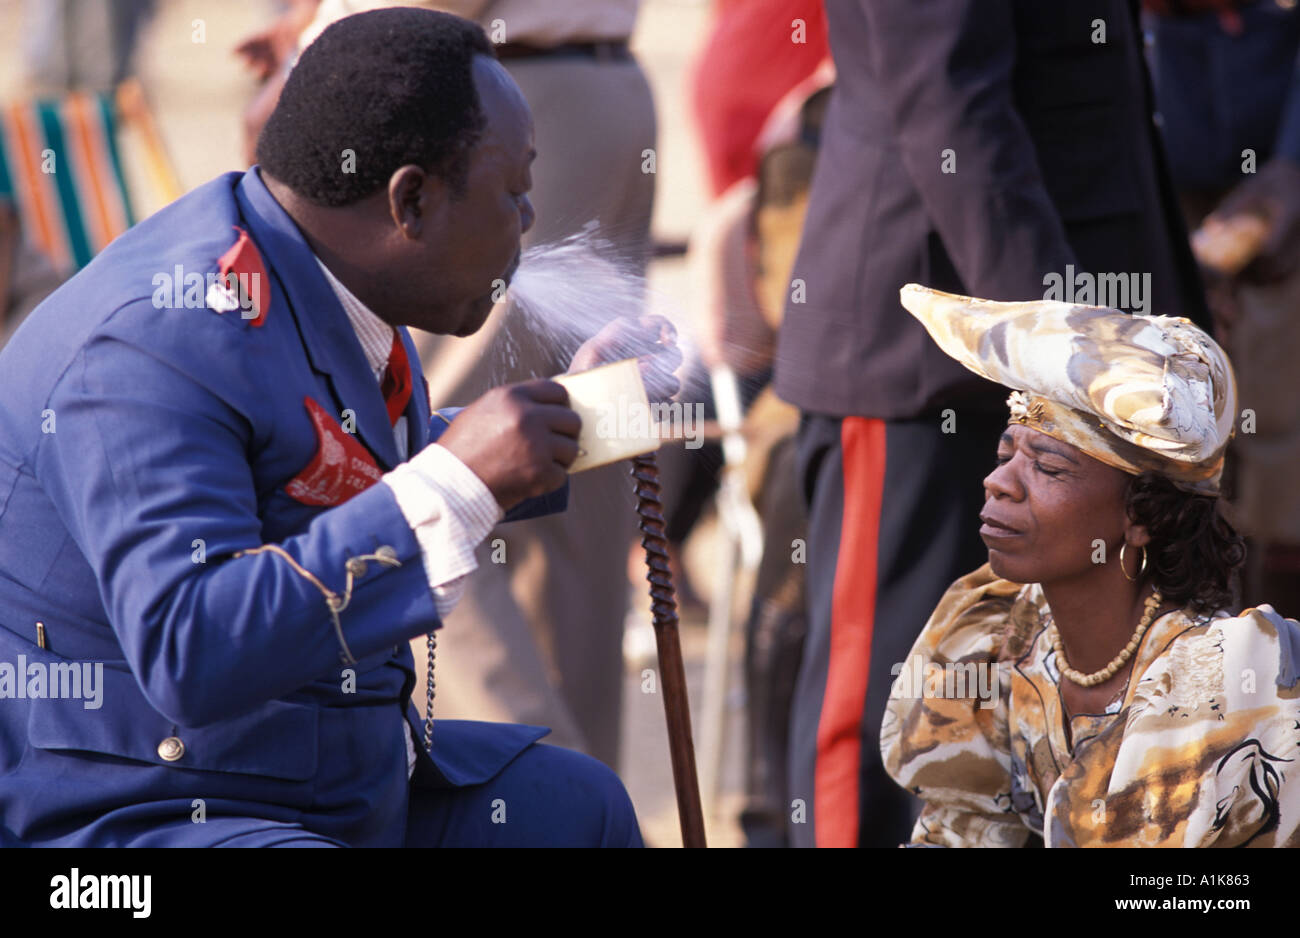 Tribal chief of paramilitary group blessing a local woman by spraying her with water alcohol Maherero day Okahandja Namibia - Stock Image